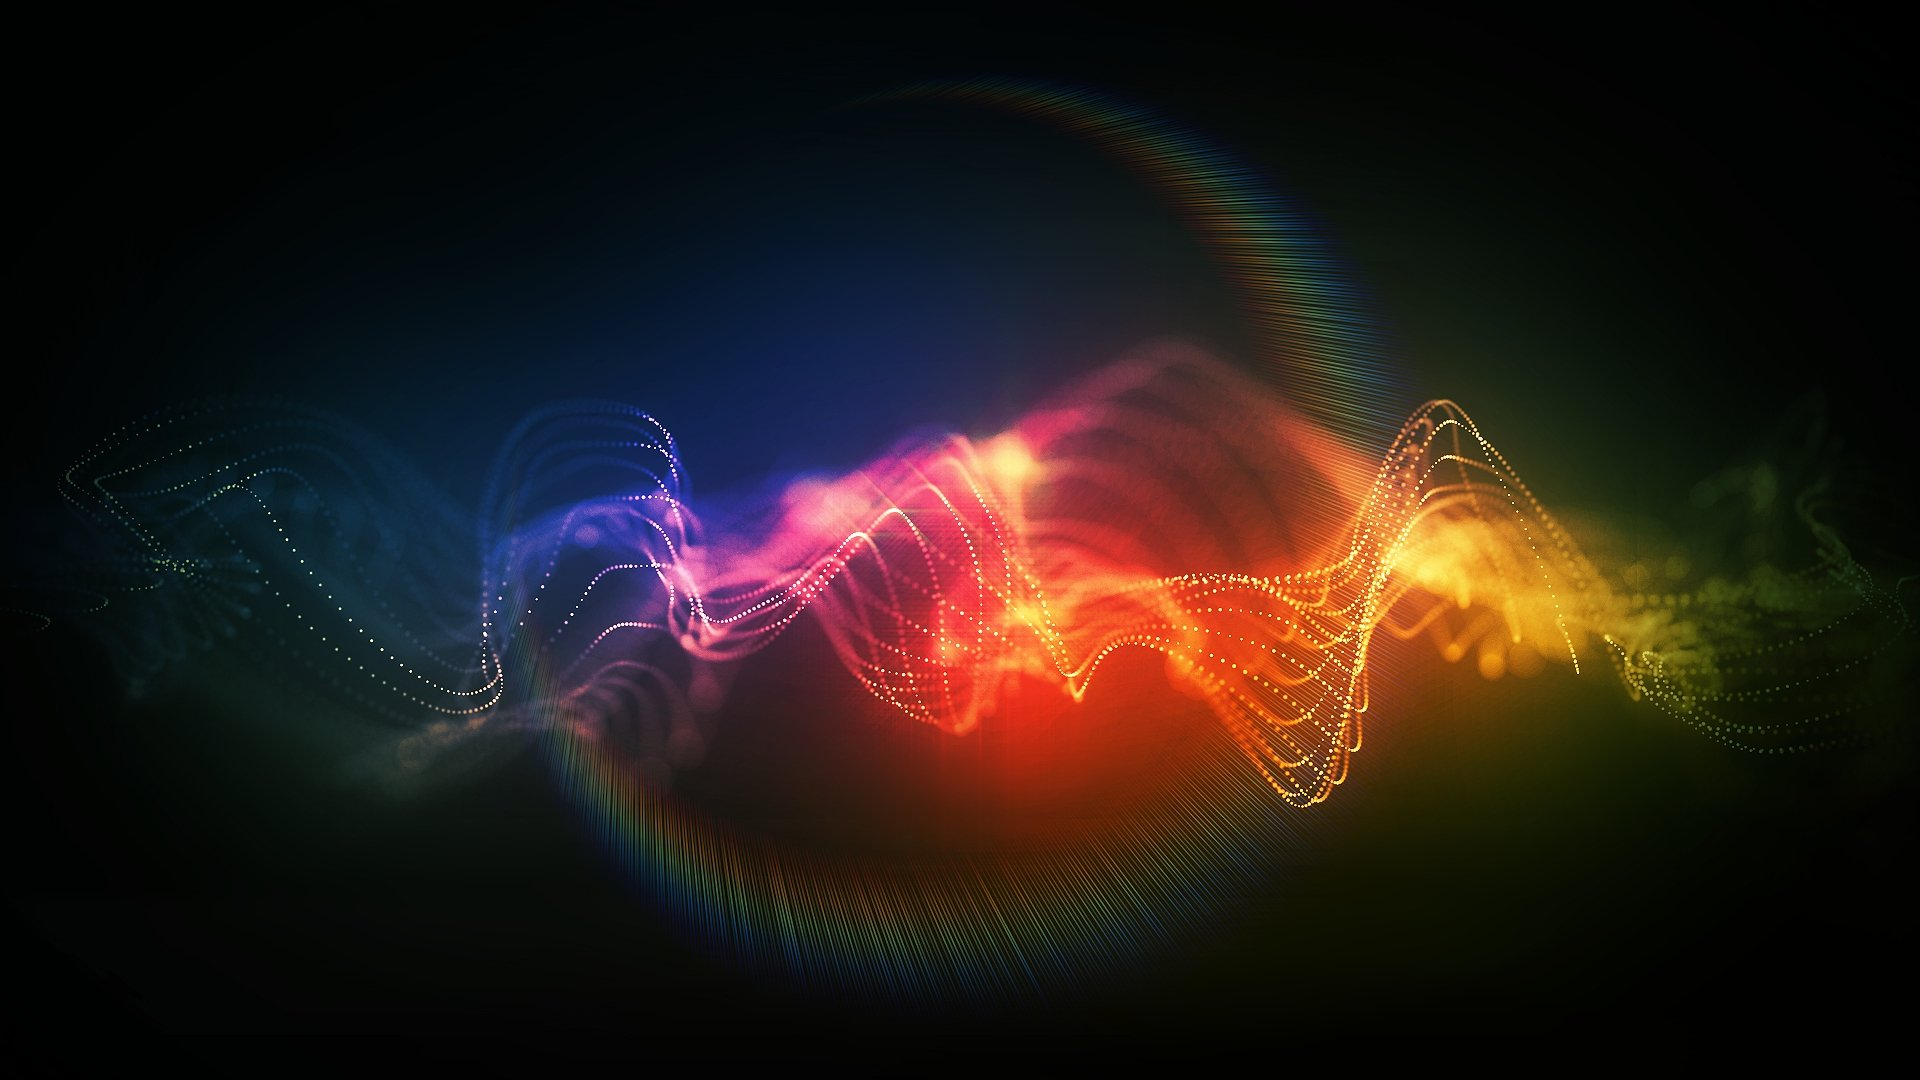 widescreen radio waves 2 hd abstract wallpaper for desktop 1920x1080 1920x1080